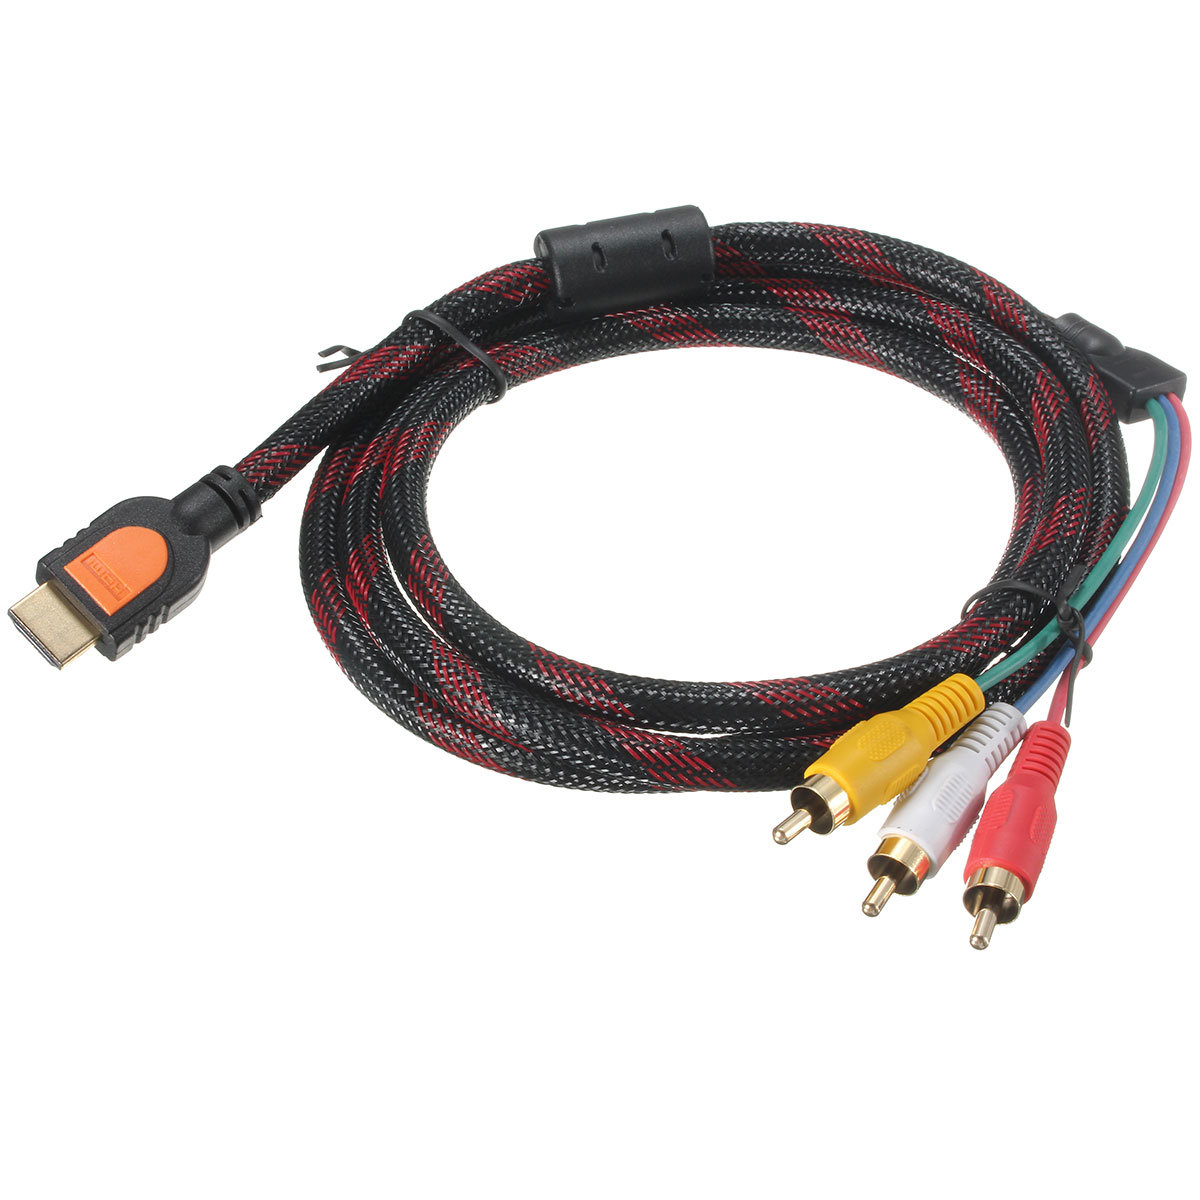 hight resolution of 5ft 1 5m hdmi to 3 rca av audio video cable cord adapter for tv hdtv dvd 1080p cod